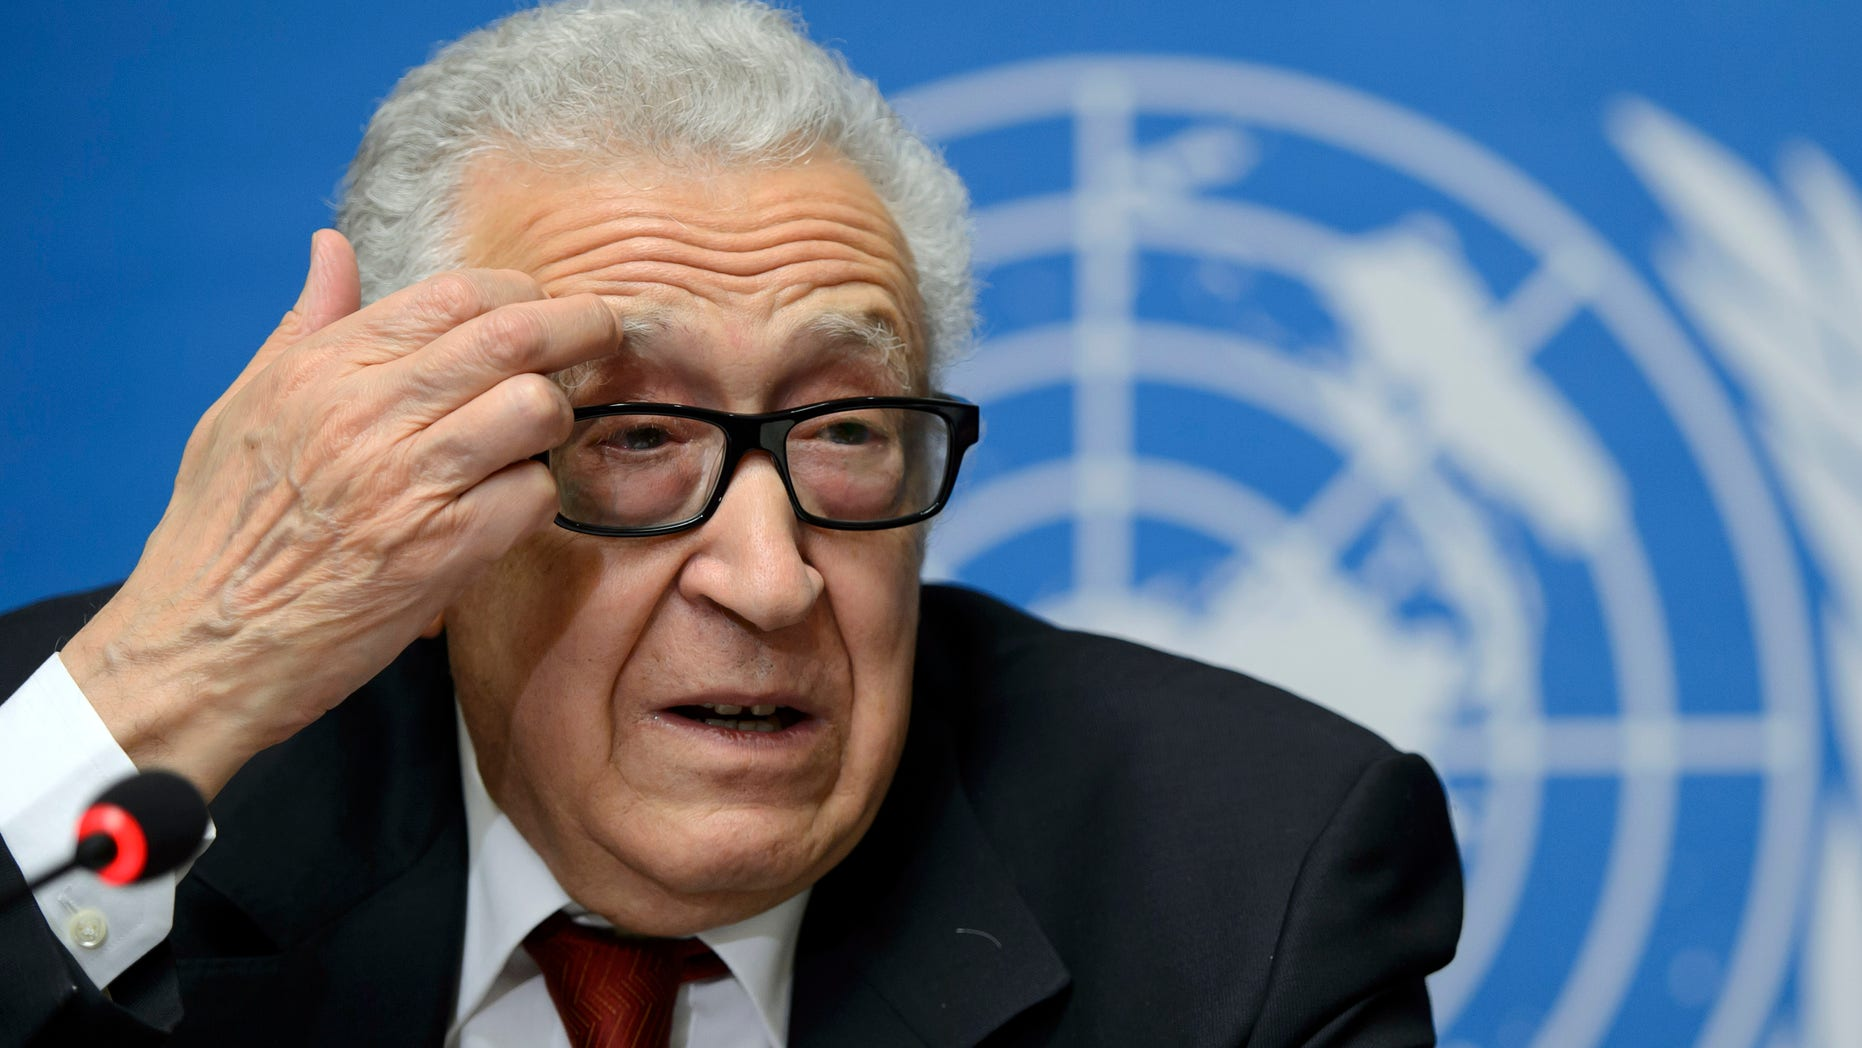 Dec. 20, 2013 - UN Joint Special Representative for Syria Lakhdar Brahimi talks to the media during a press conference at the European headquarters of the United Nations, in Geneva, Switzerland.